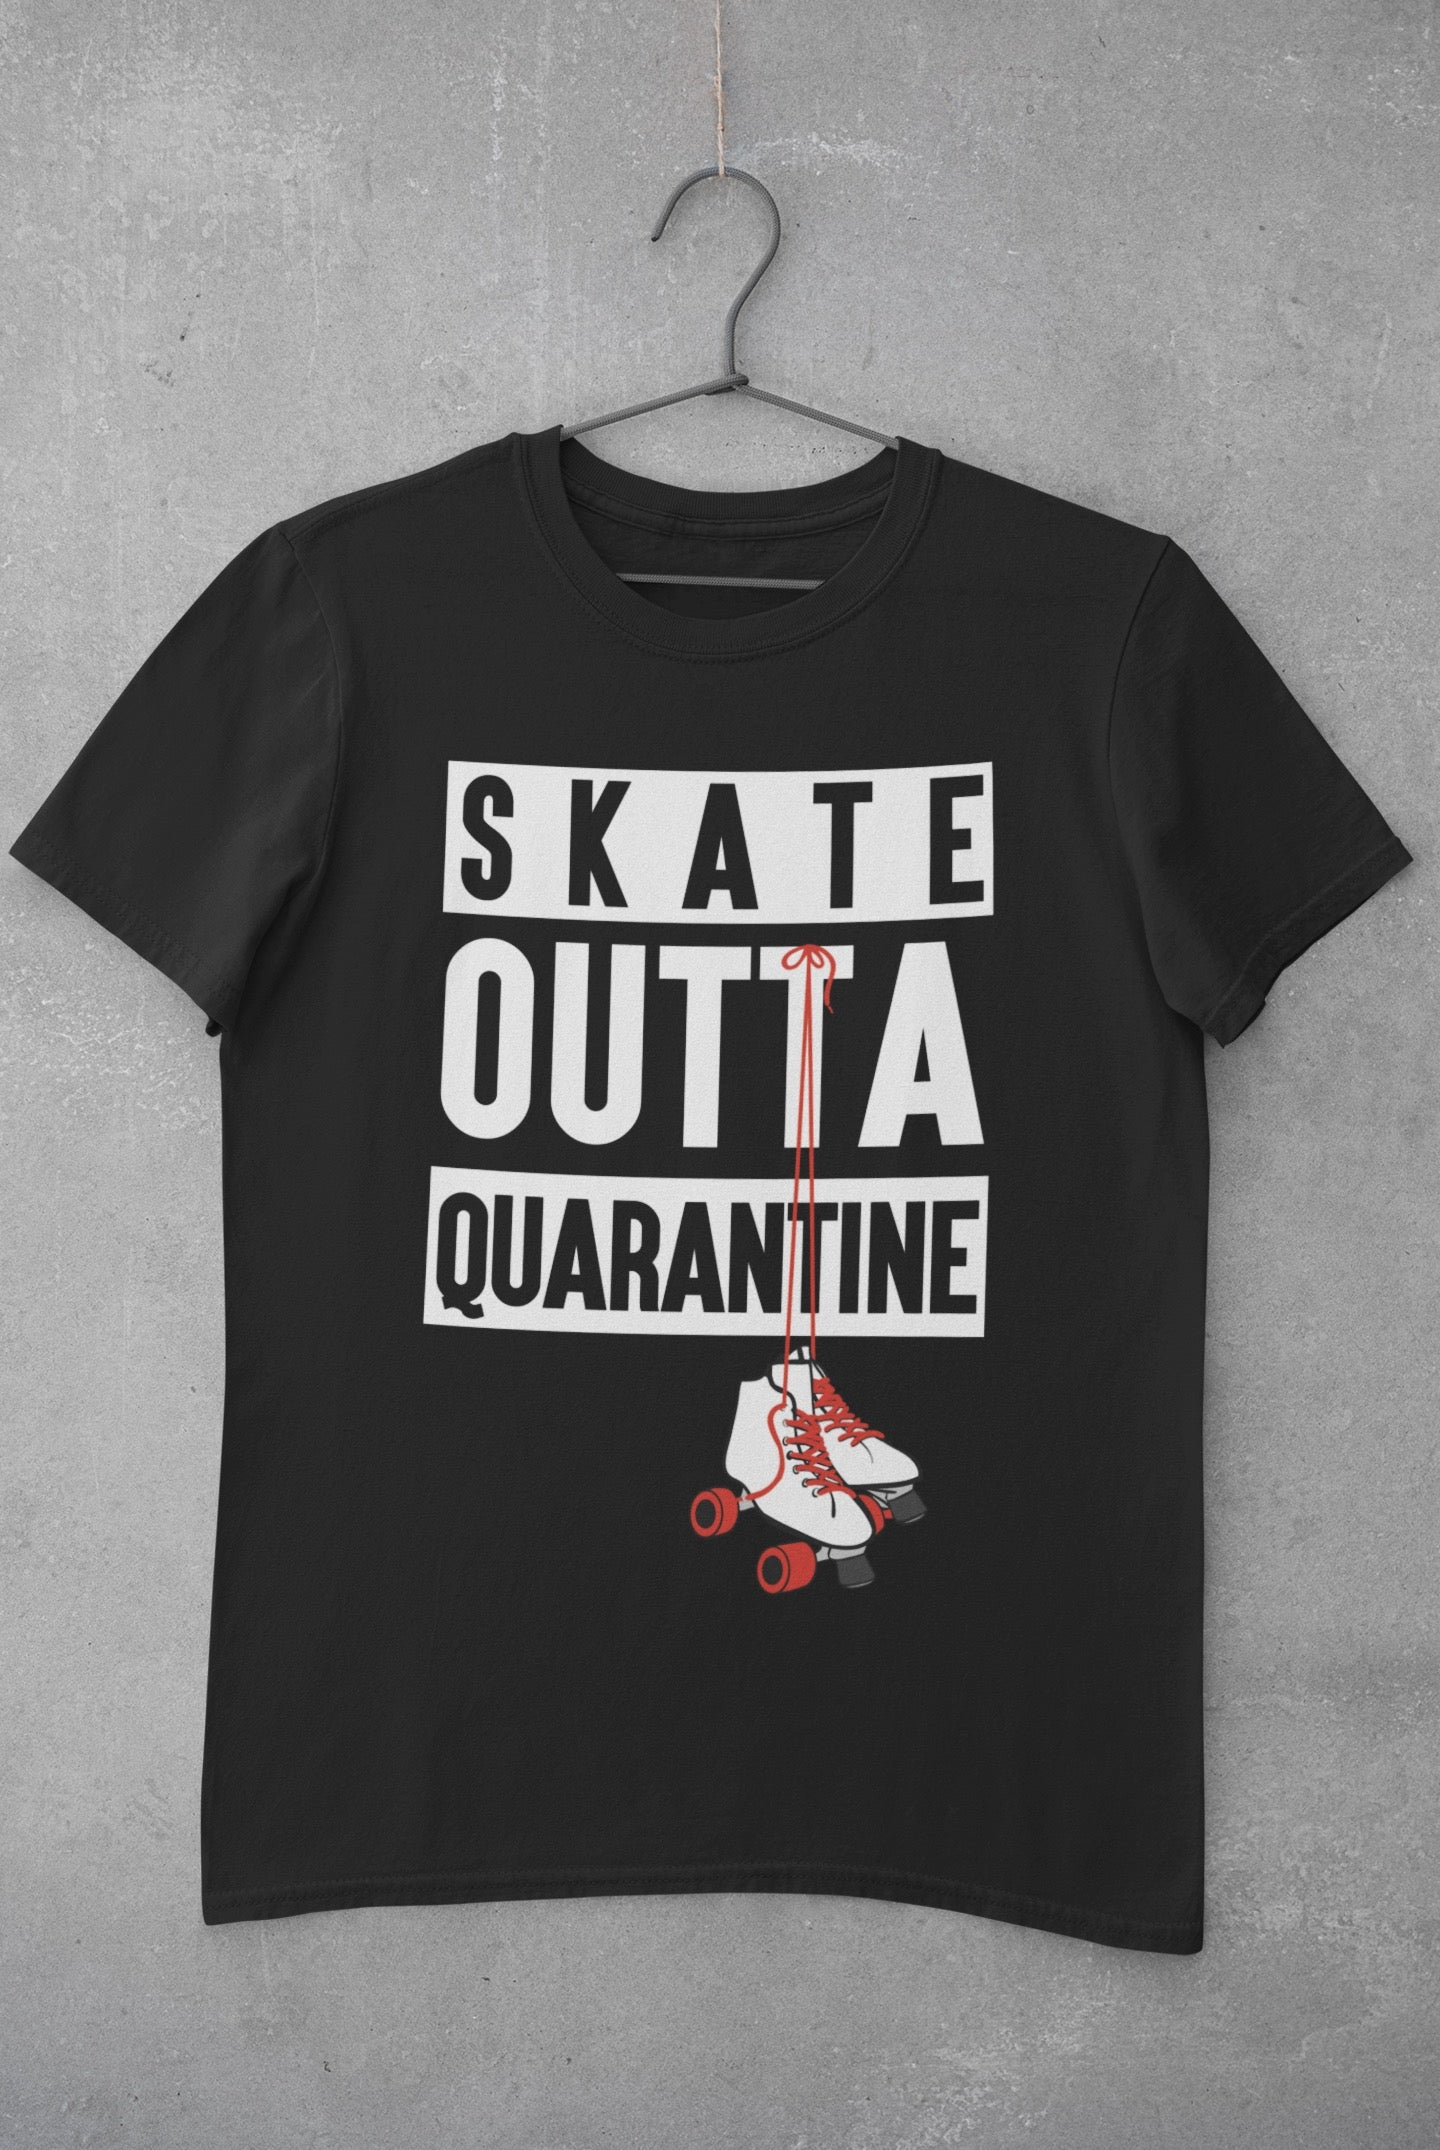 SKATE OUTTA QUARANTINE 2 Men's X  T-Shirt